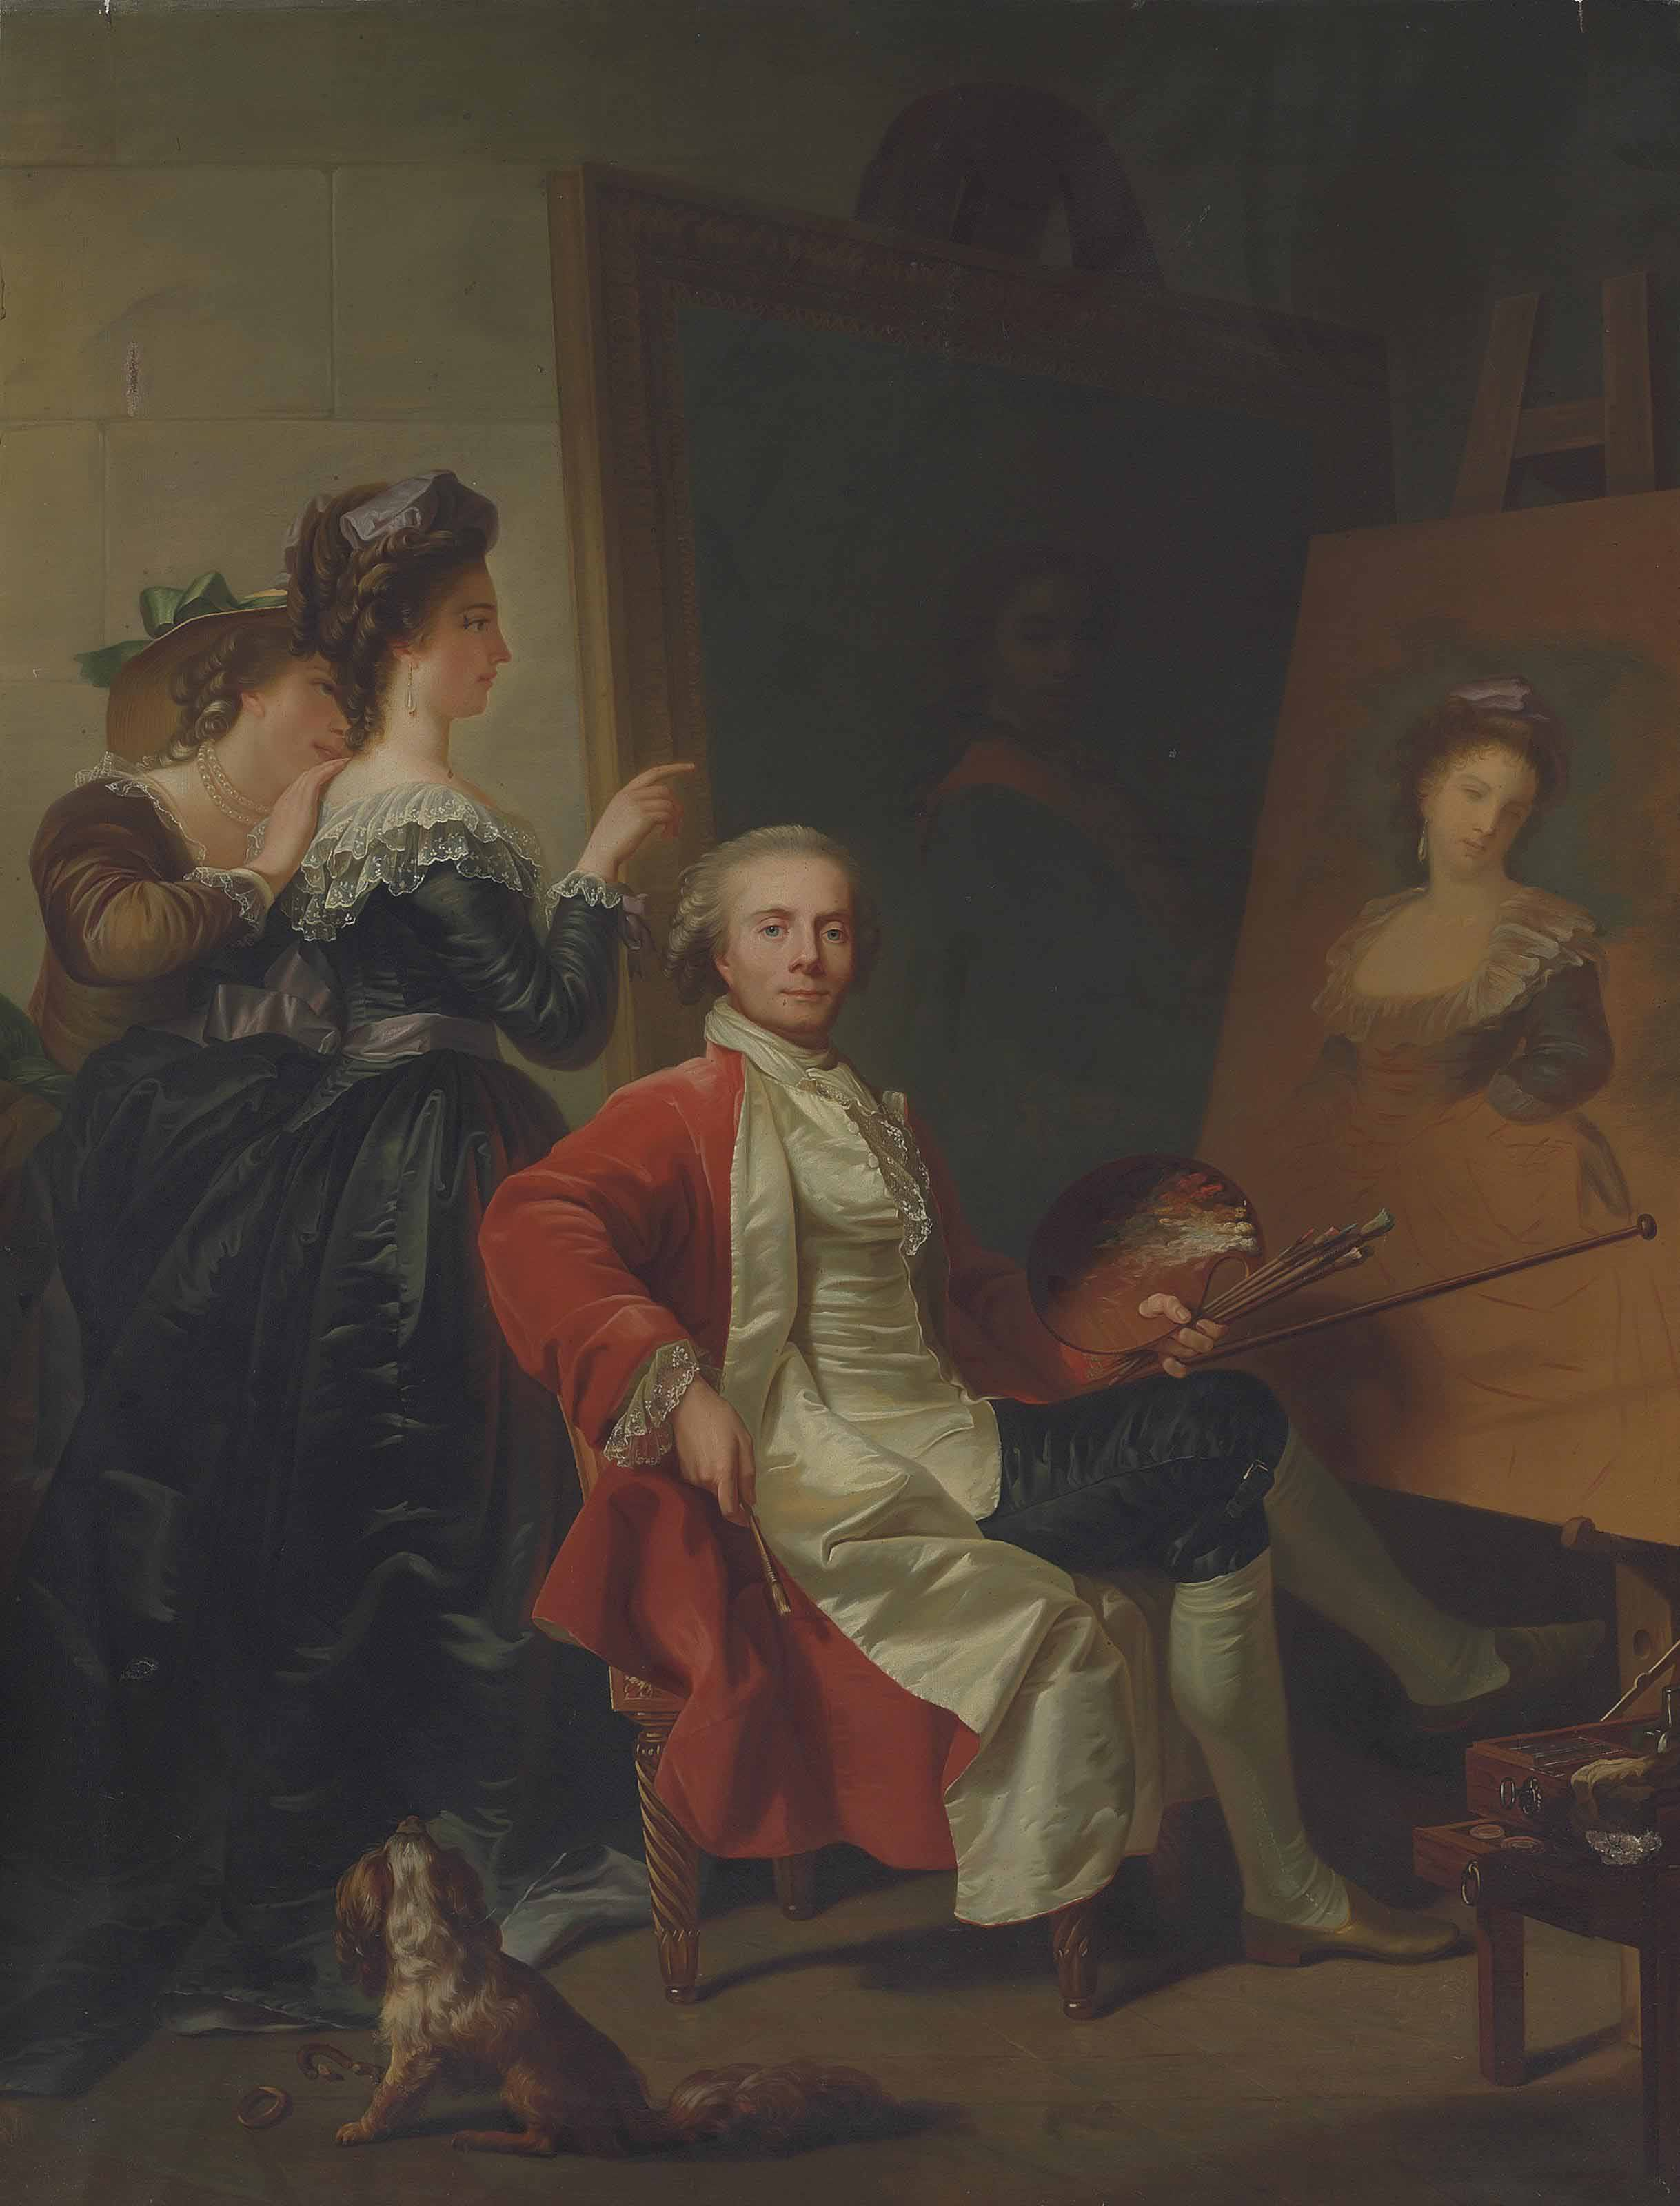 Portrait of Jean-Laurent Mosnier (1743/4-1808), full-length, seated, with his daughters, in his studio, a portrait said to be of Tsar Peter the Great in uniform beyond